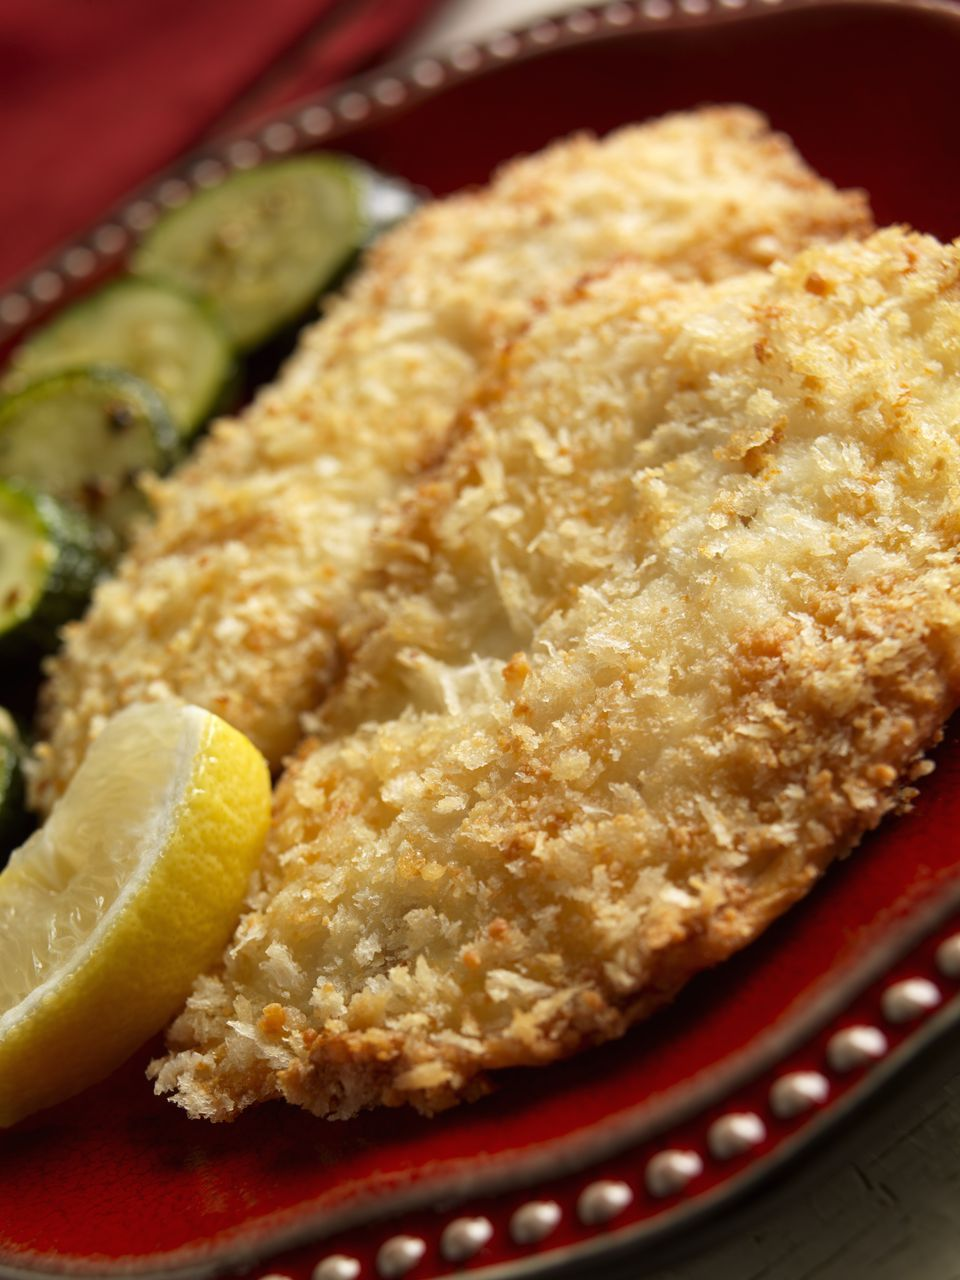 Baked fish coated with Panko and Parmesan